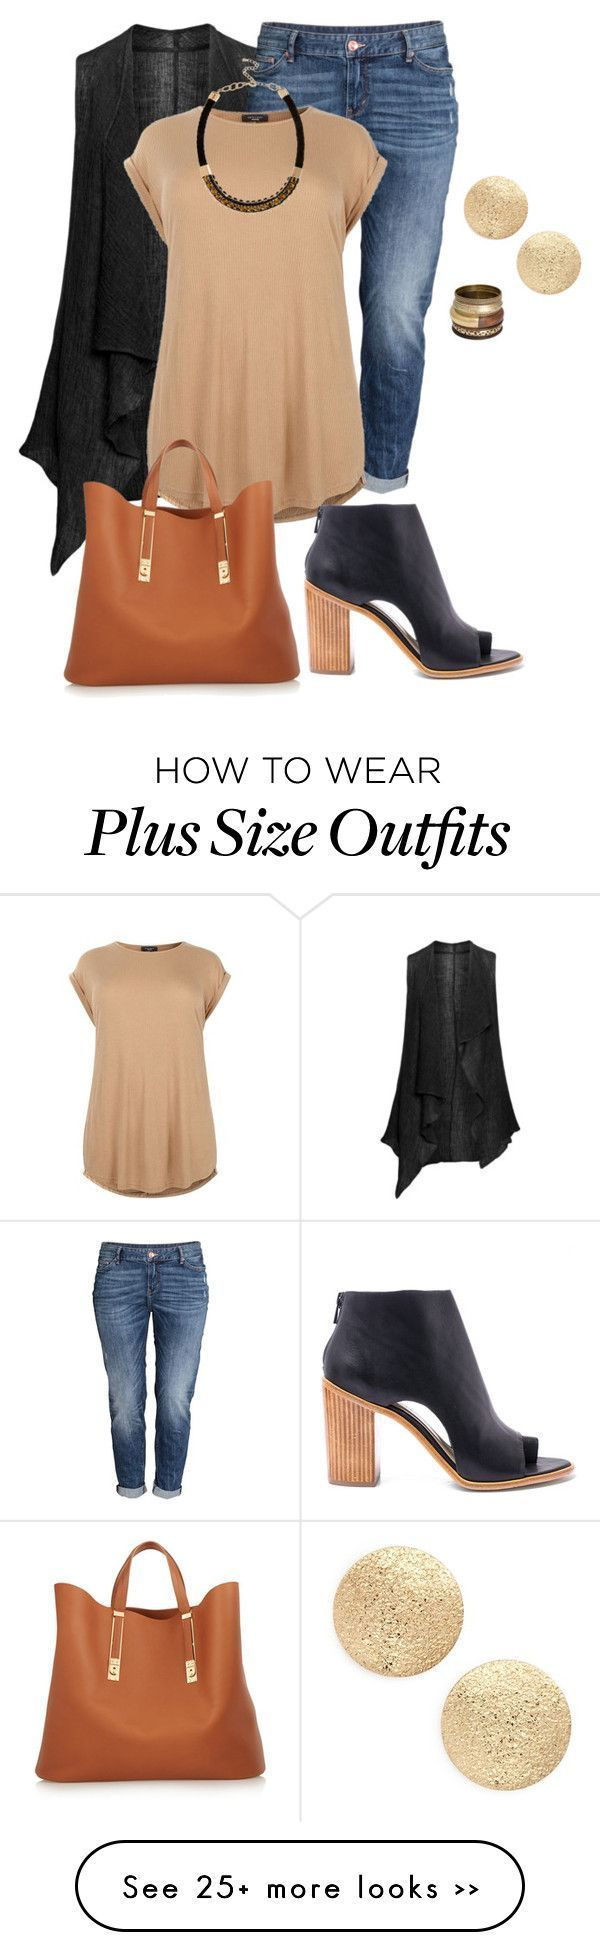 awesome Plus Size Sets by http://www.globalfashionista.xyz/plus-size-fashion/plus-size-sets-3/  Explore our amazing collection of plus size tops at http://wholesaleplussize.clothing/